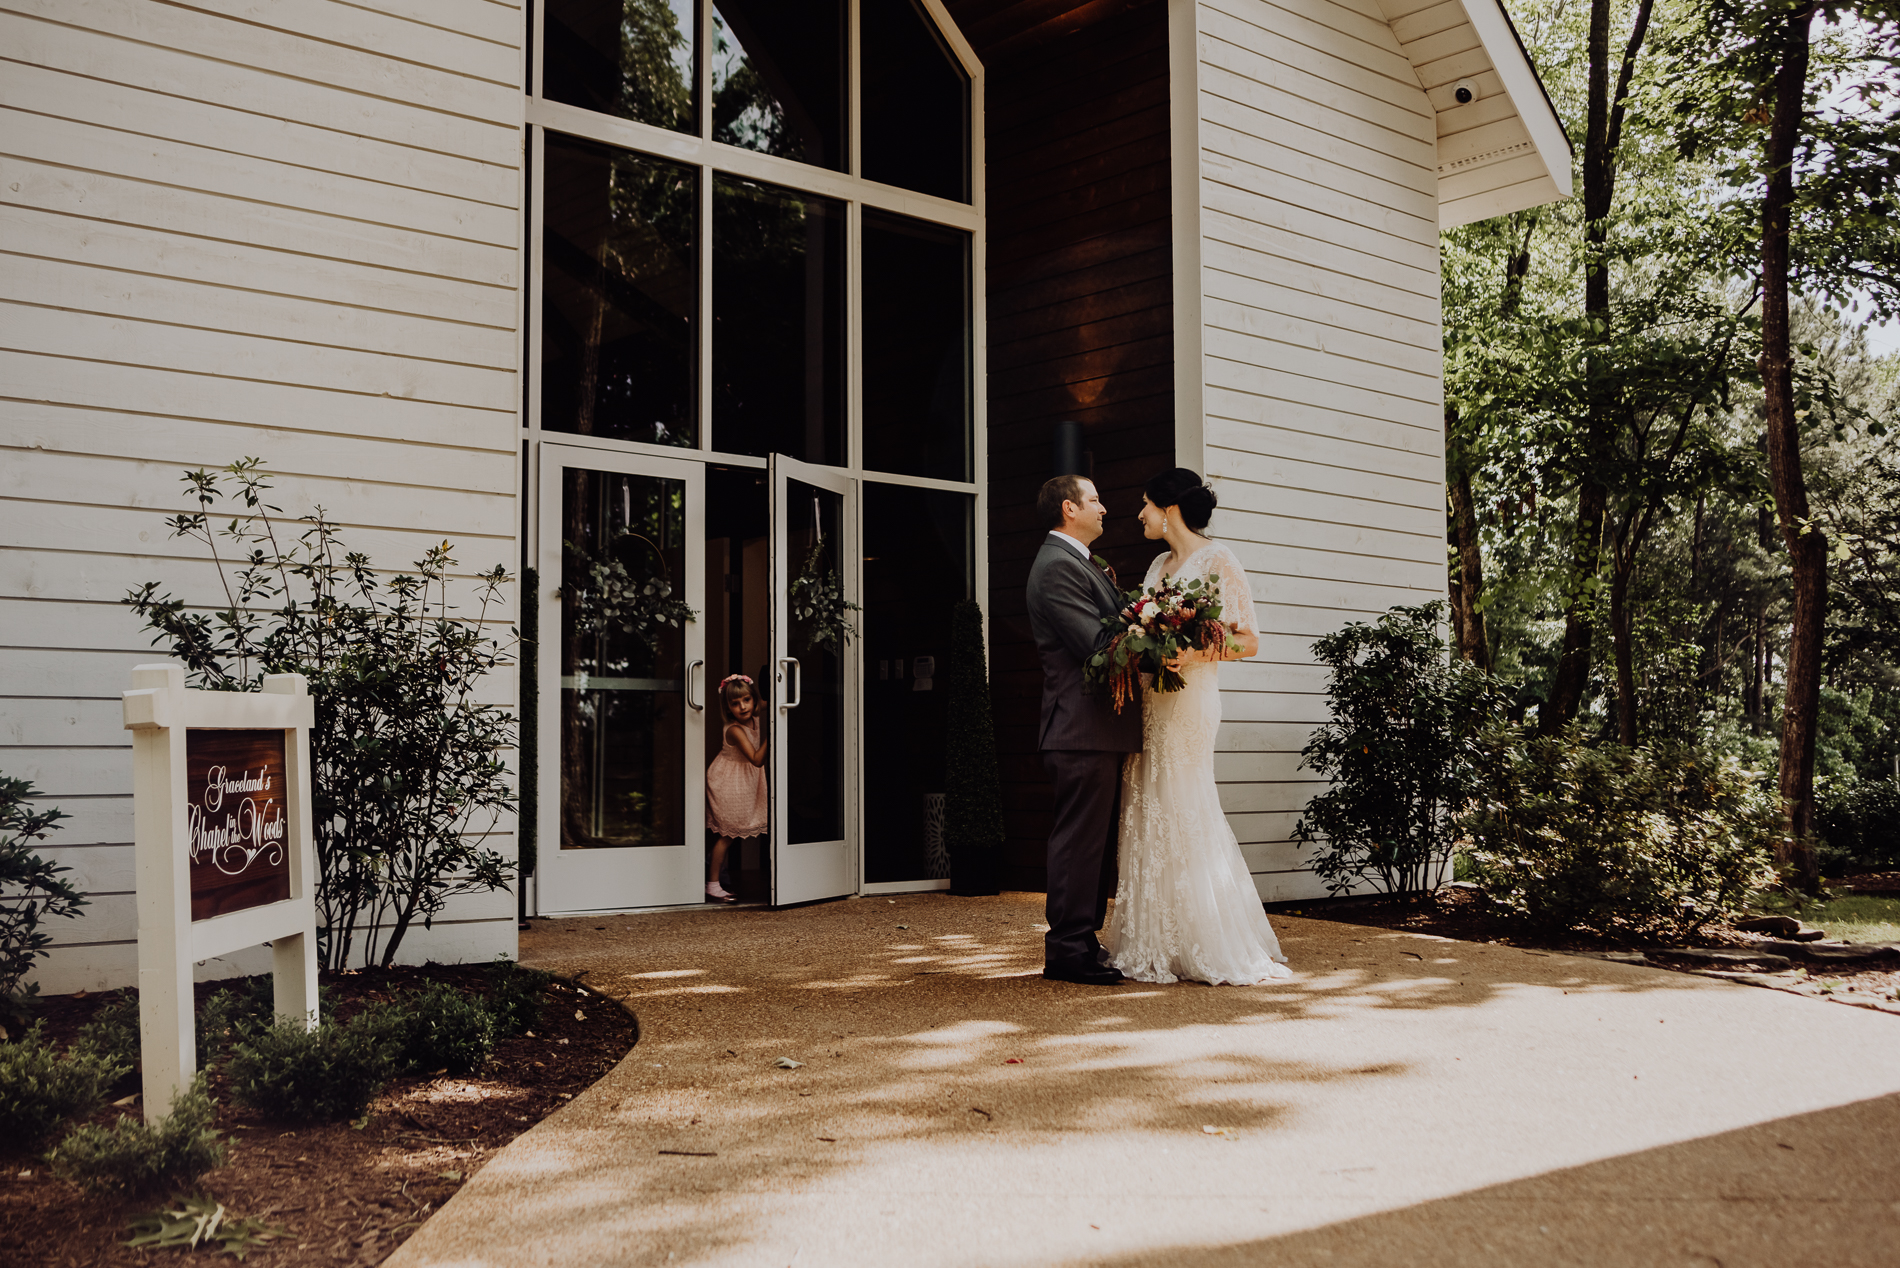 julia and dennis wedding at graceland by wilde company-104.jpg